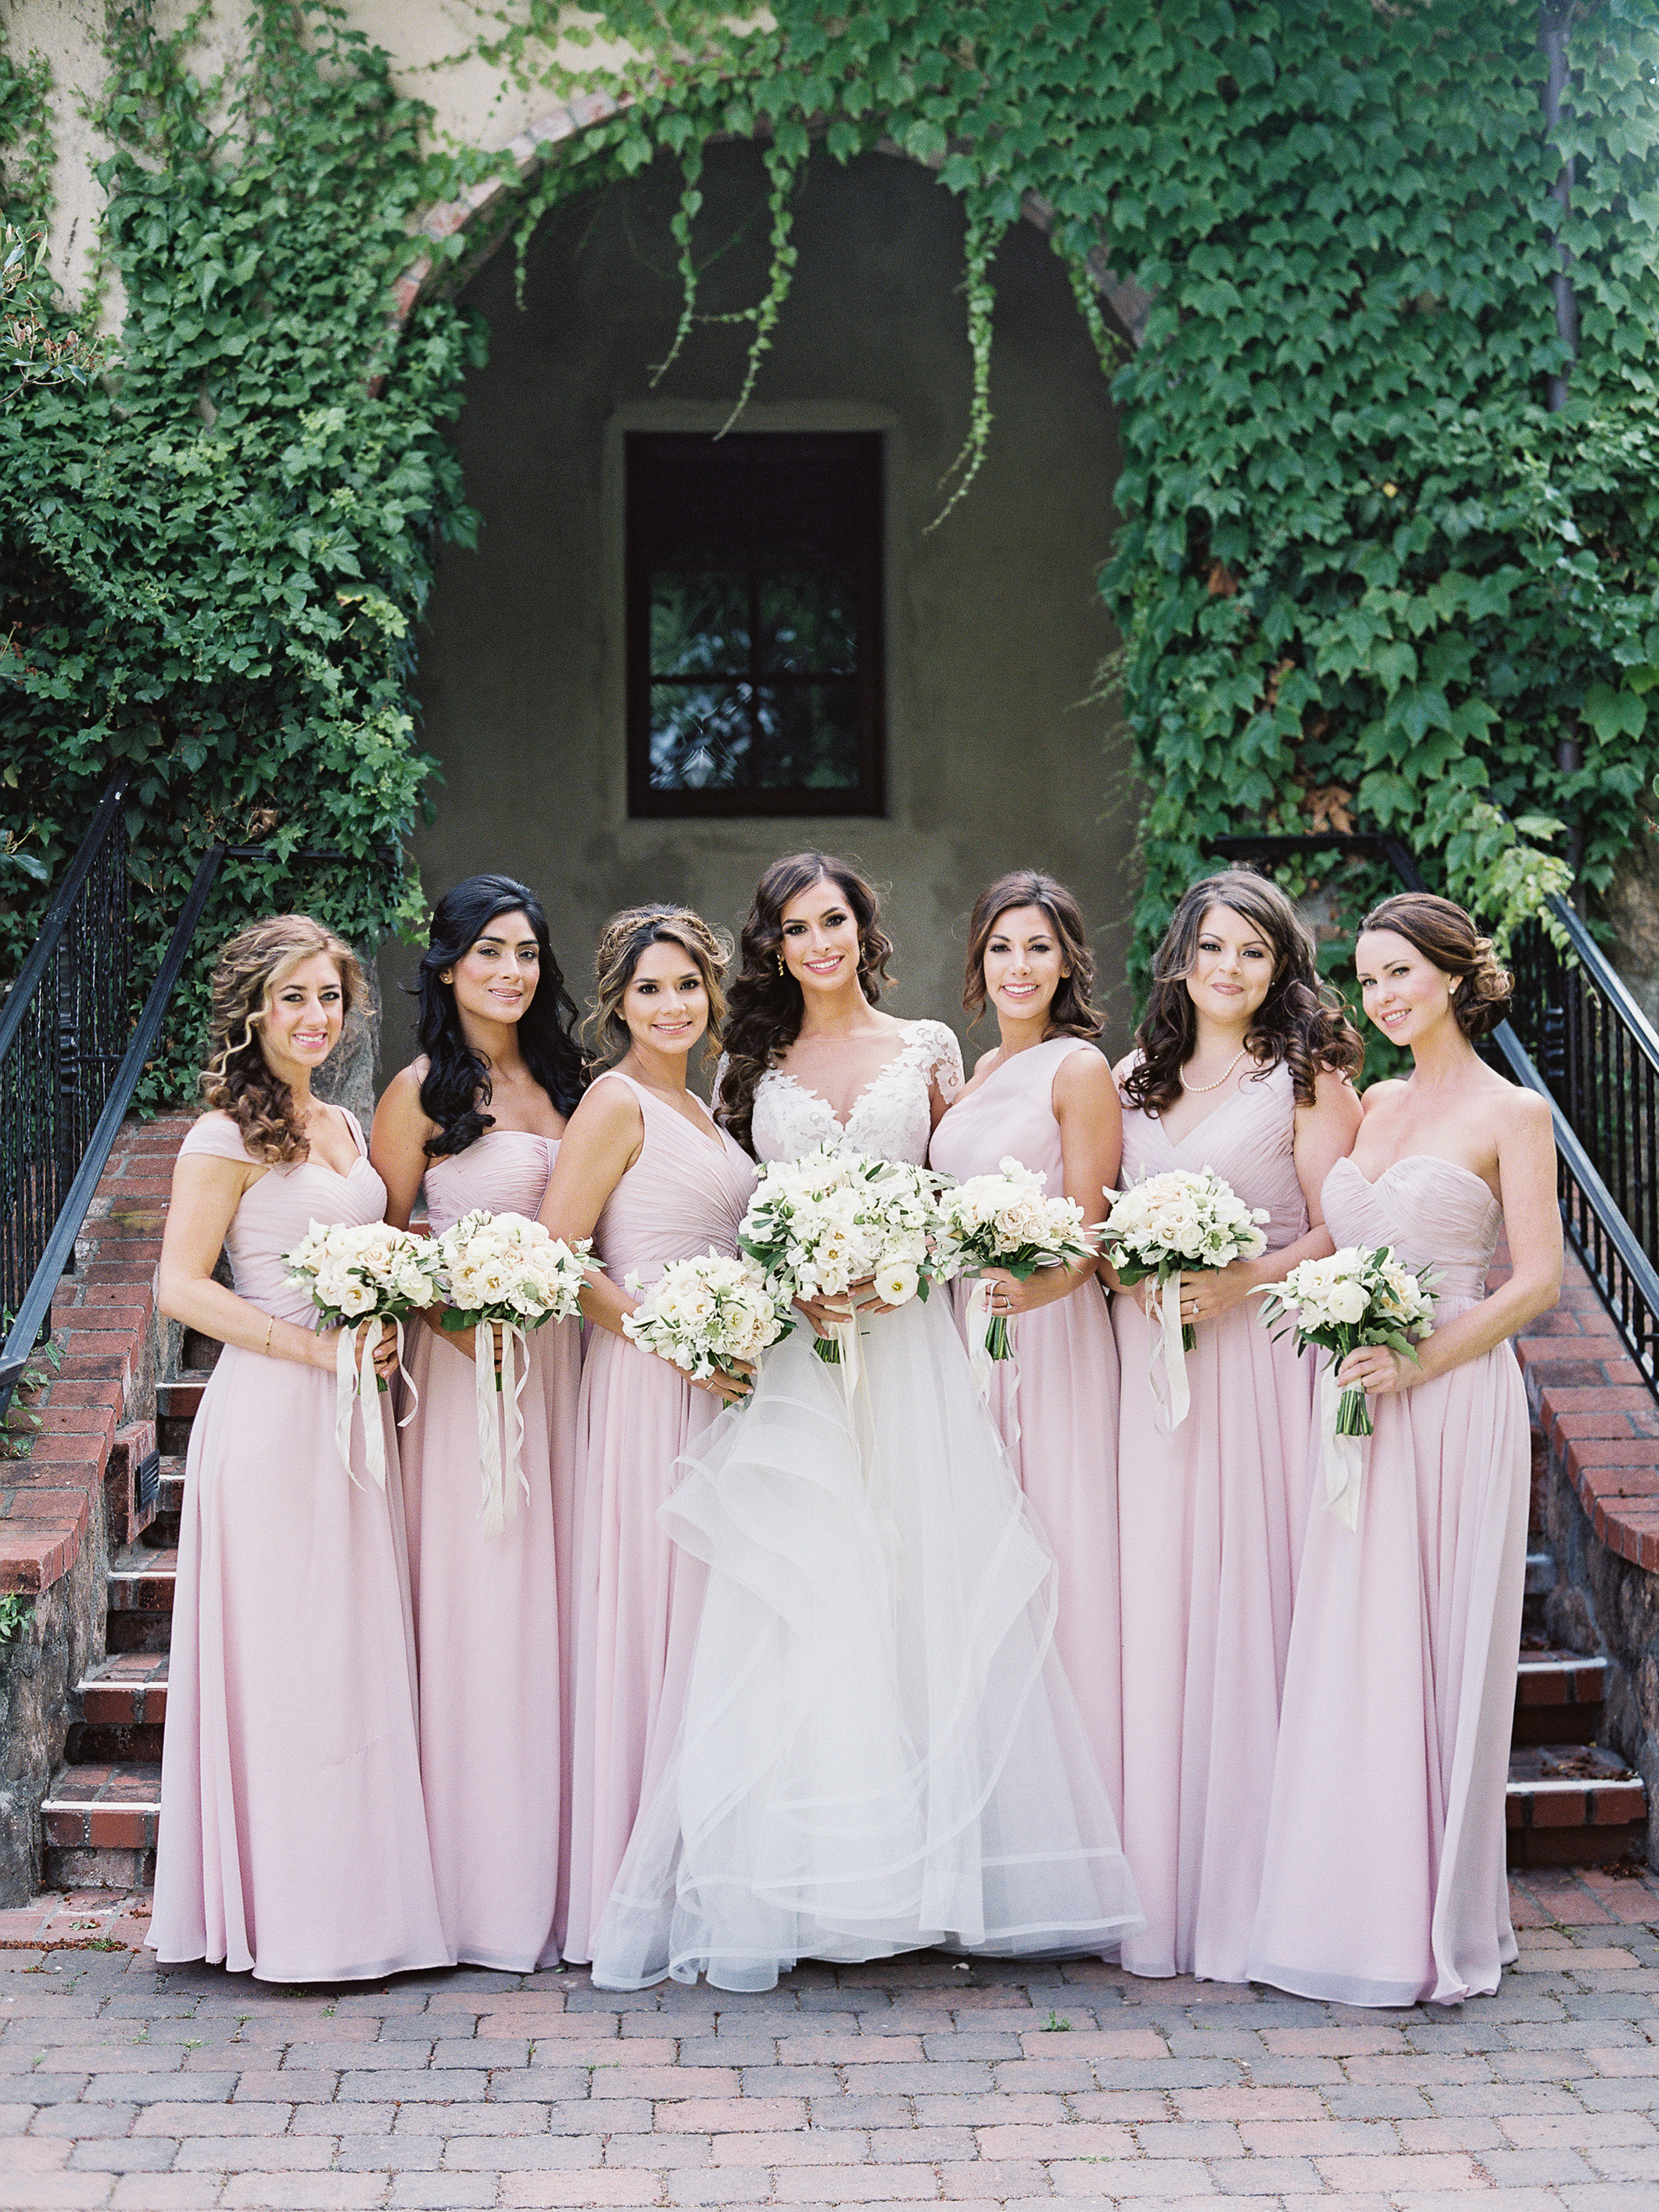 Meghan Mehan Photography | Fine Art Film Wedding Photographer | California | San Francisco | Napa | Sonoma | Santa Barbara | Big Sur | Destination Wedding Photographer 043.jpg